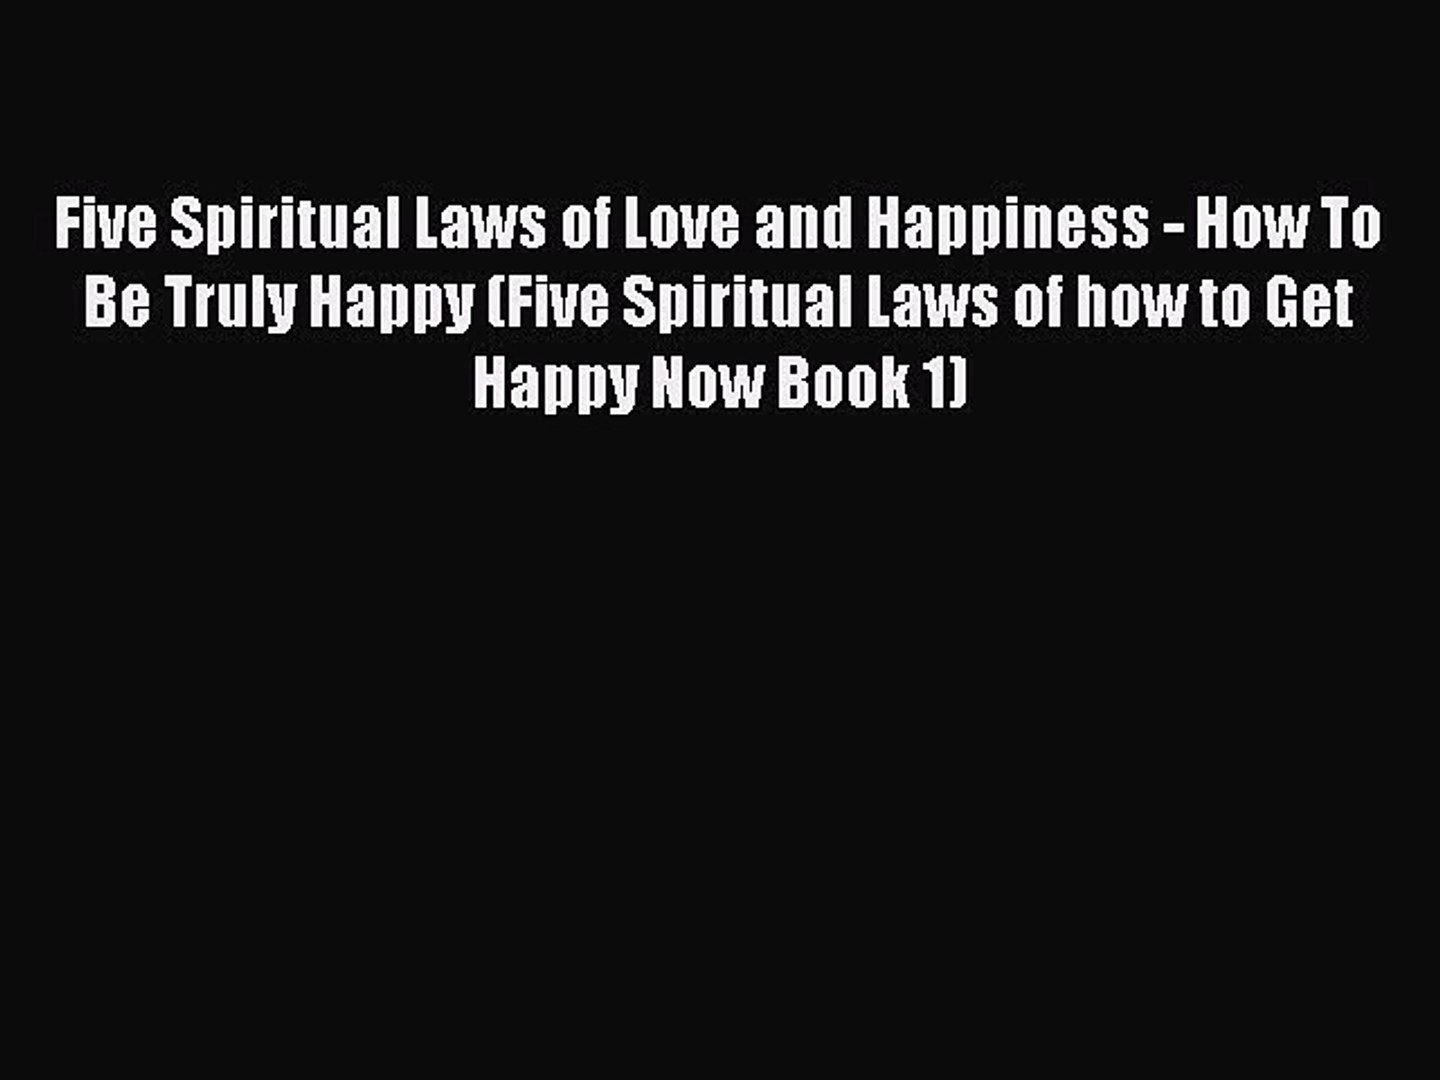 PDF Five Spiritual Laws of Love and Happiness - How To Be Truly Happy (Five Spiritual Laws